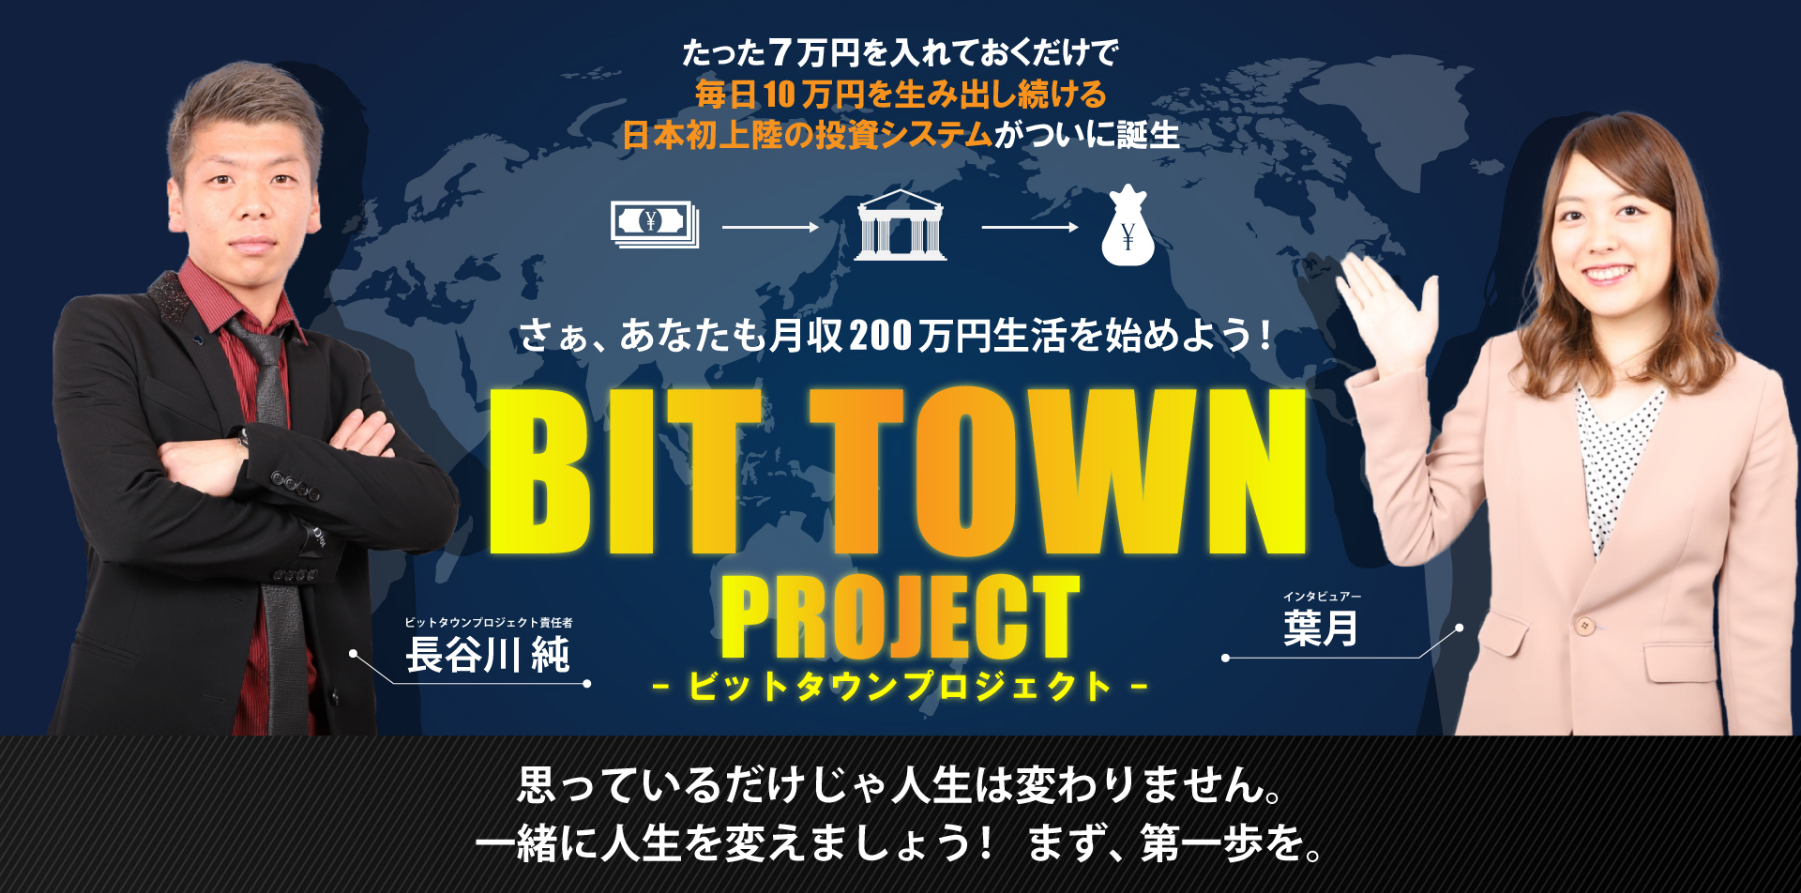 BITTWON PROJECT